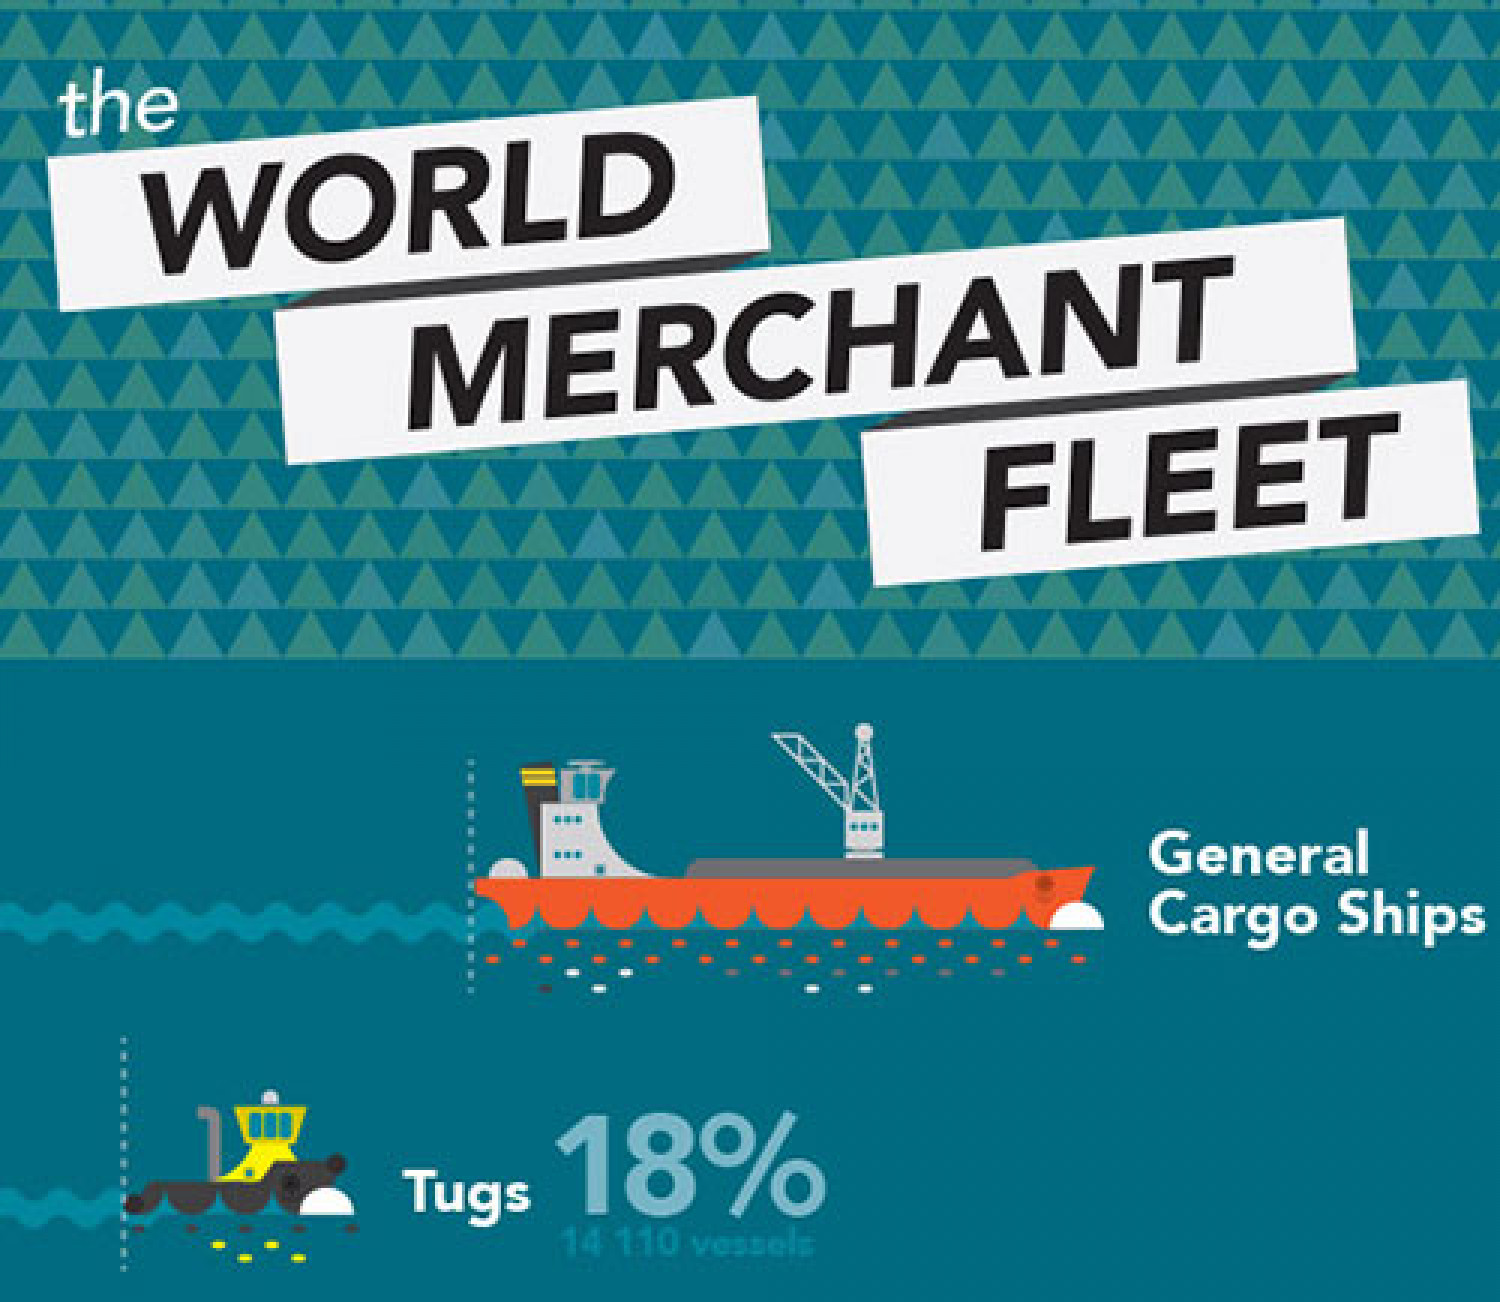 The World Merchant Fleet Infographic